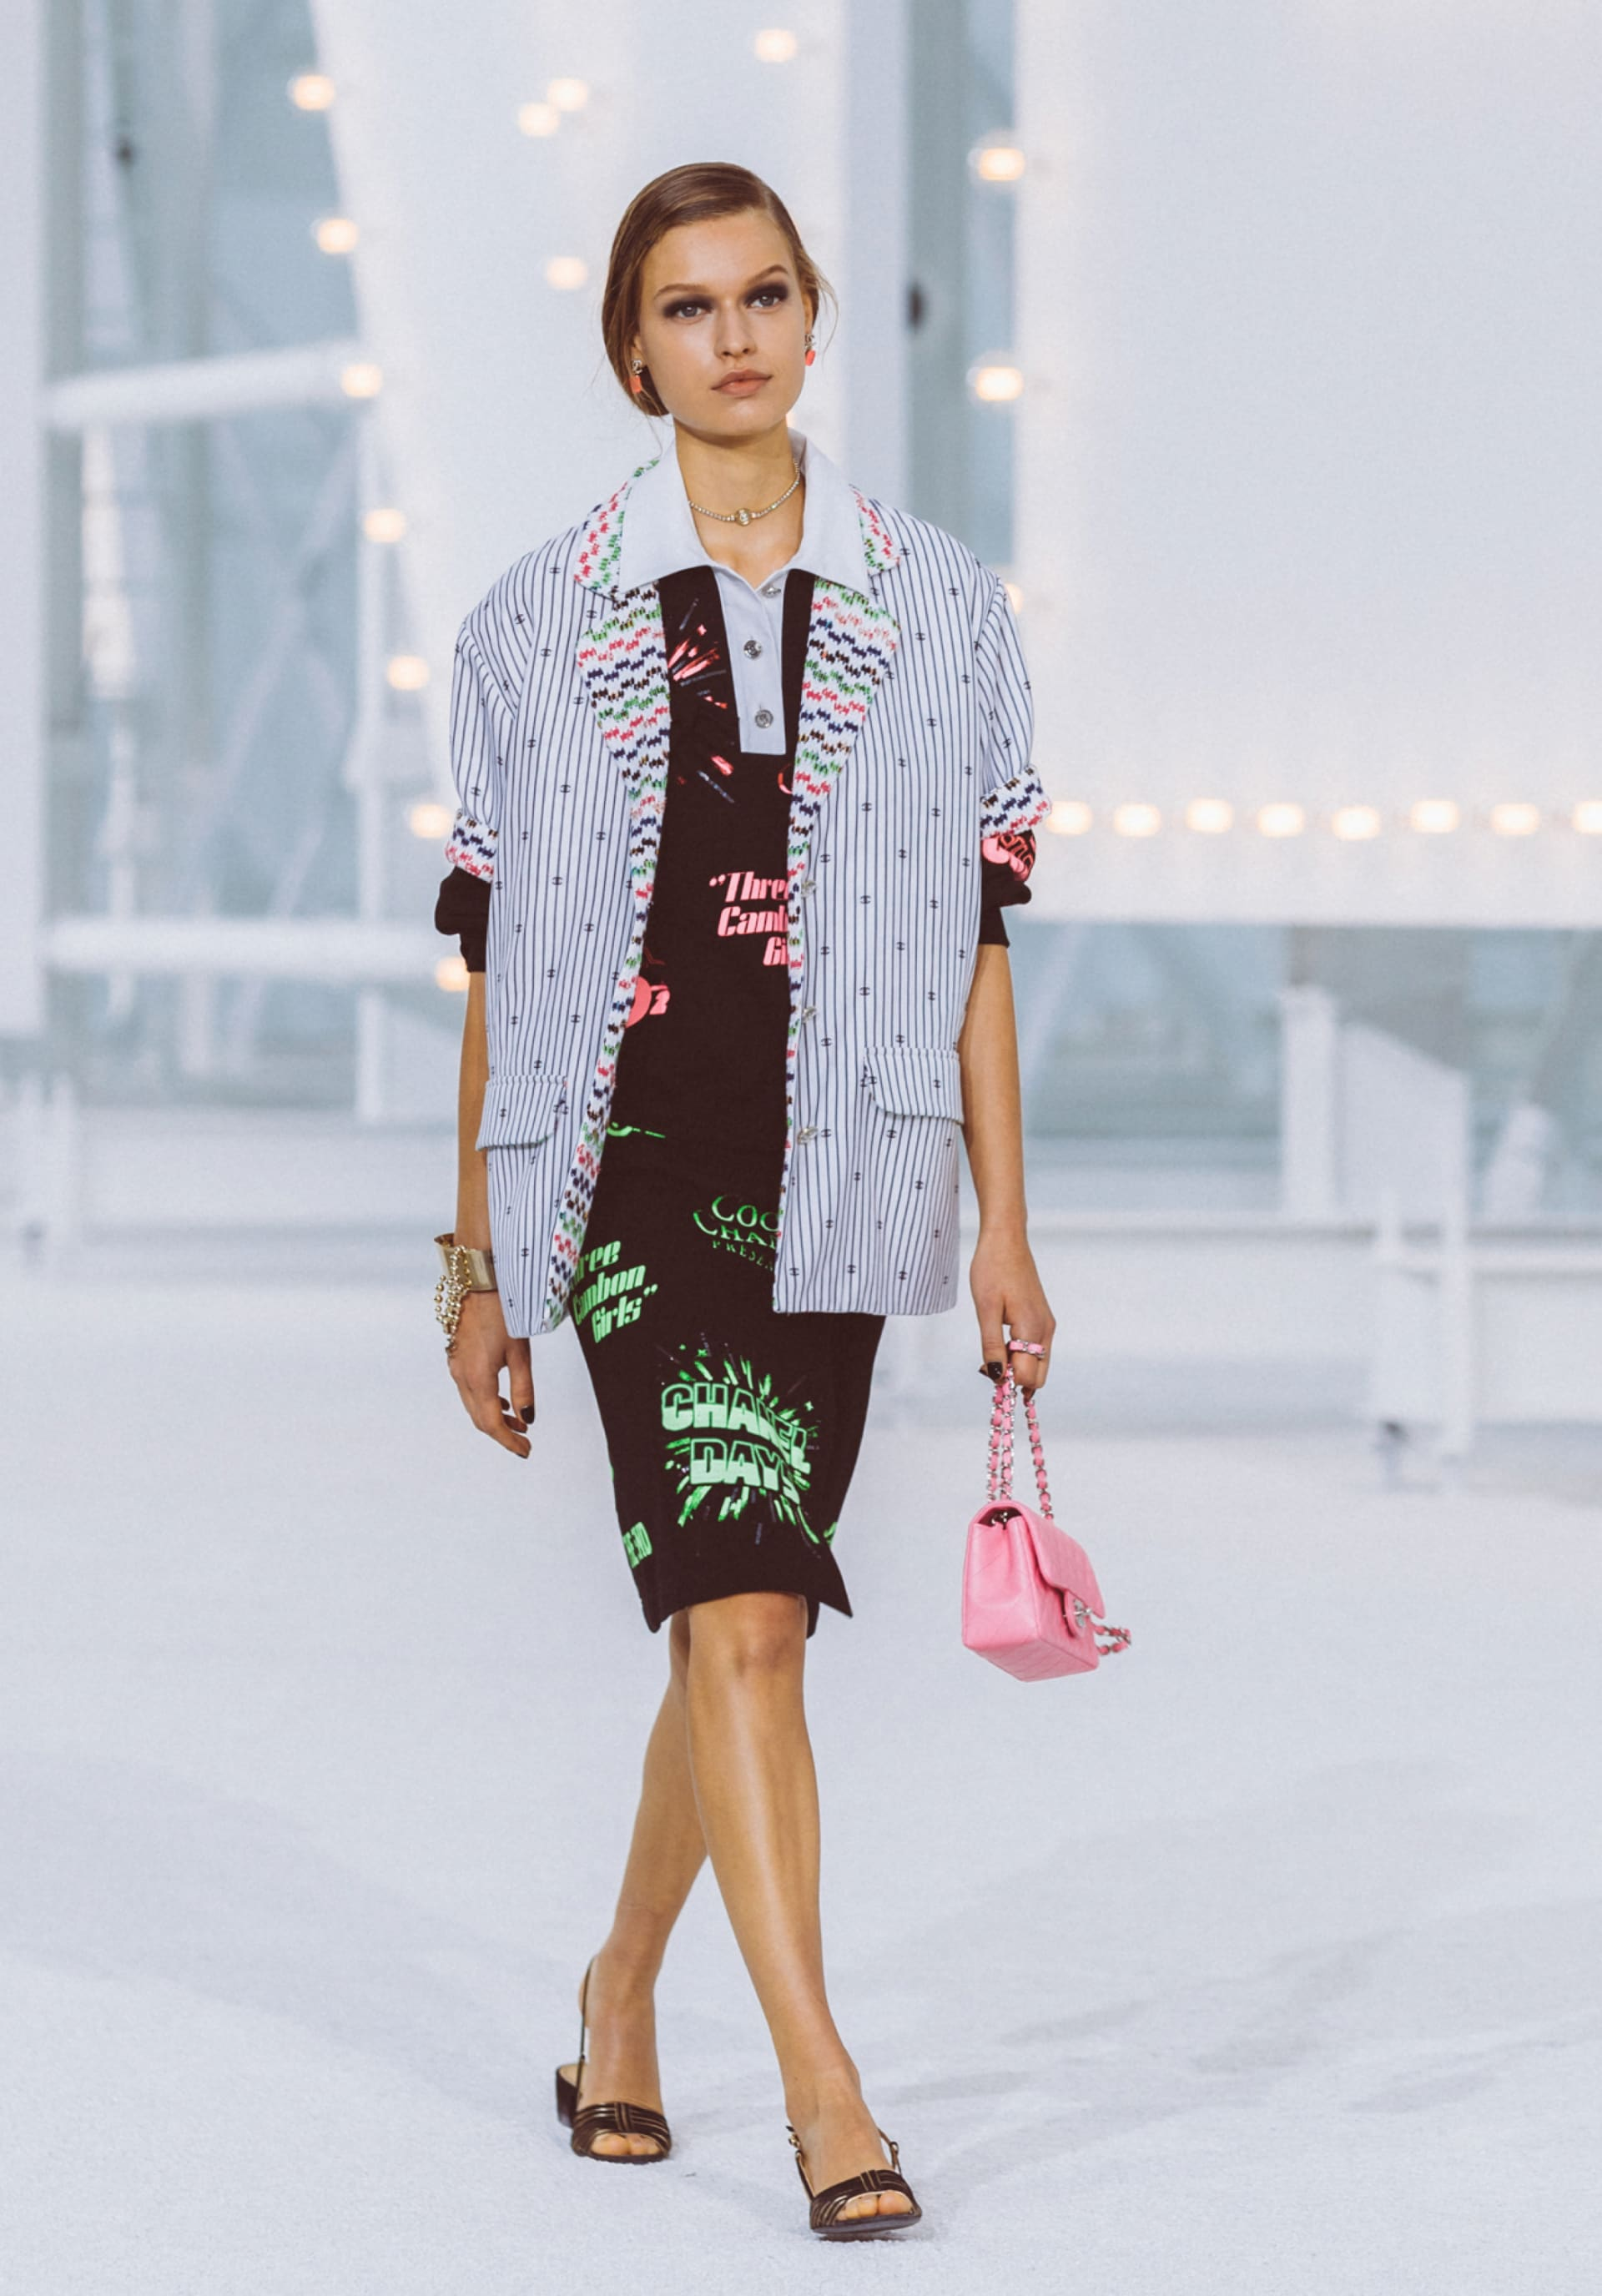 View 1 - Look26 - Spring-Summer 2021 - see full sized version